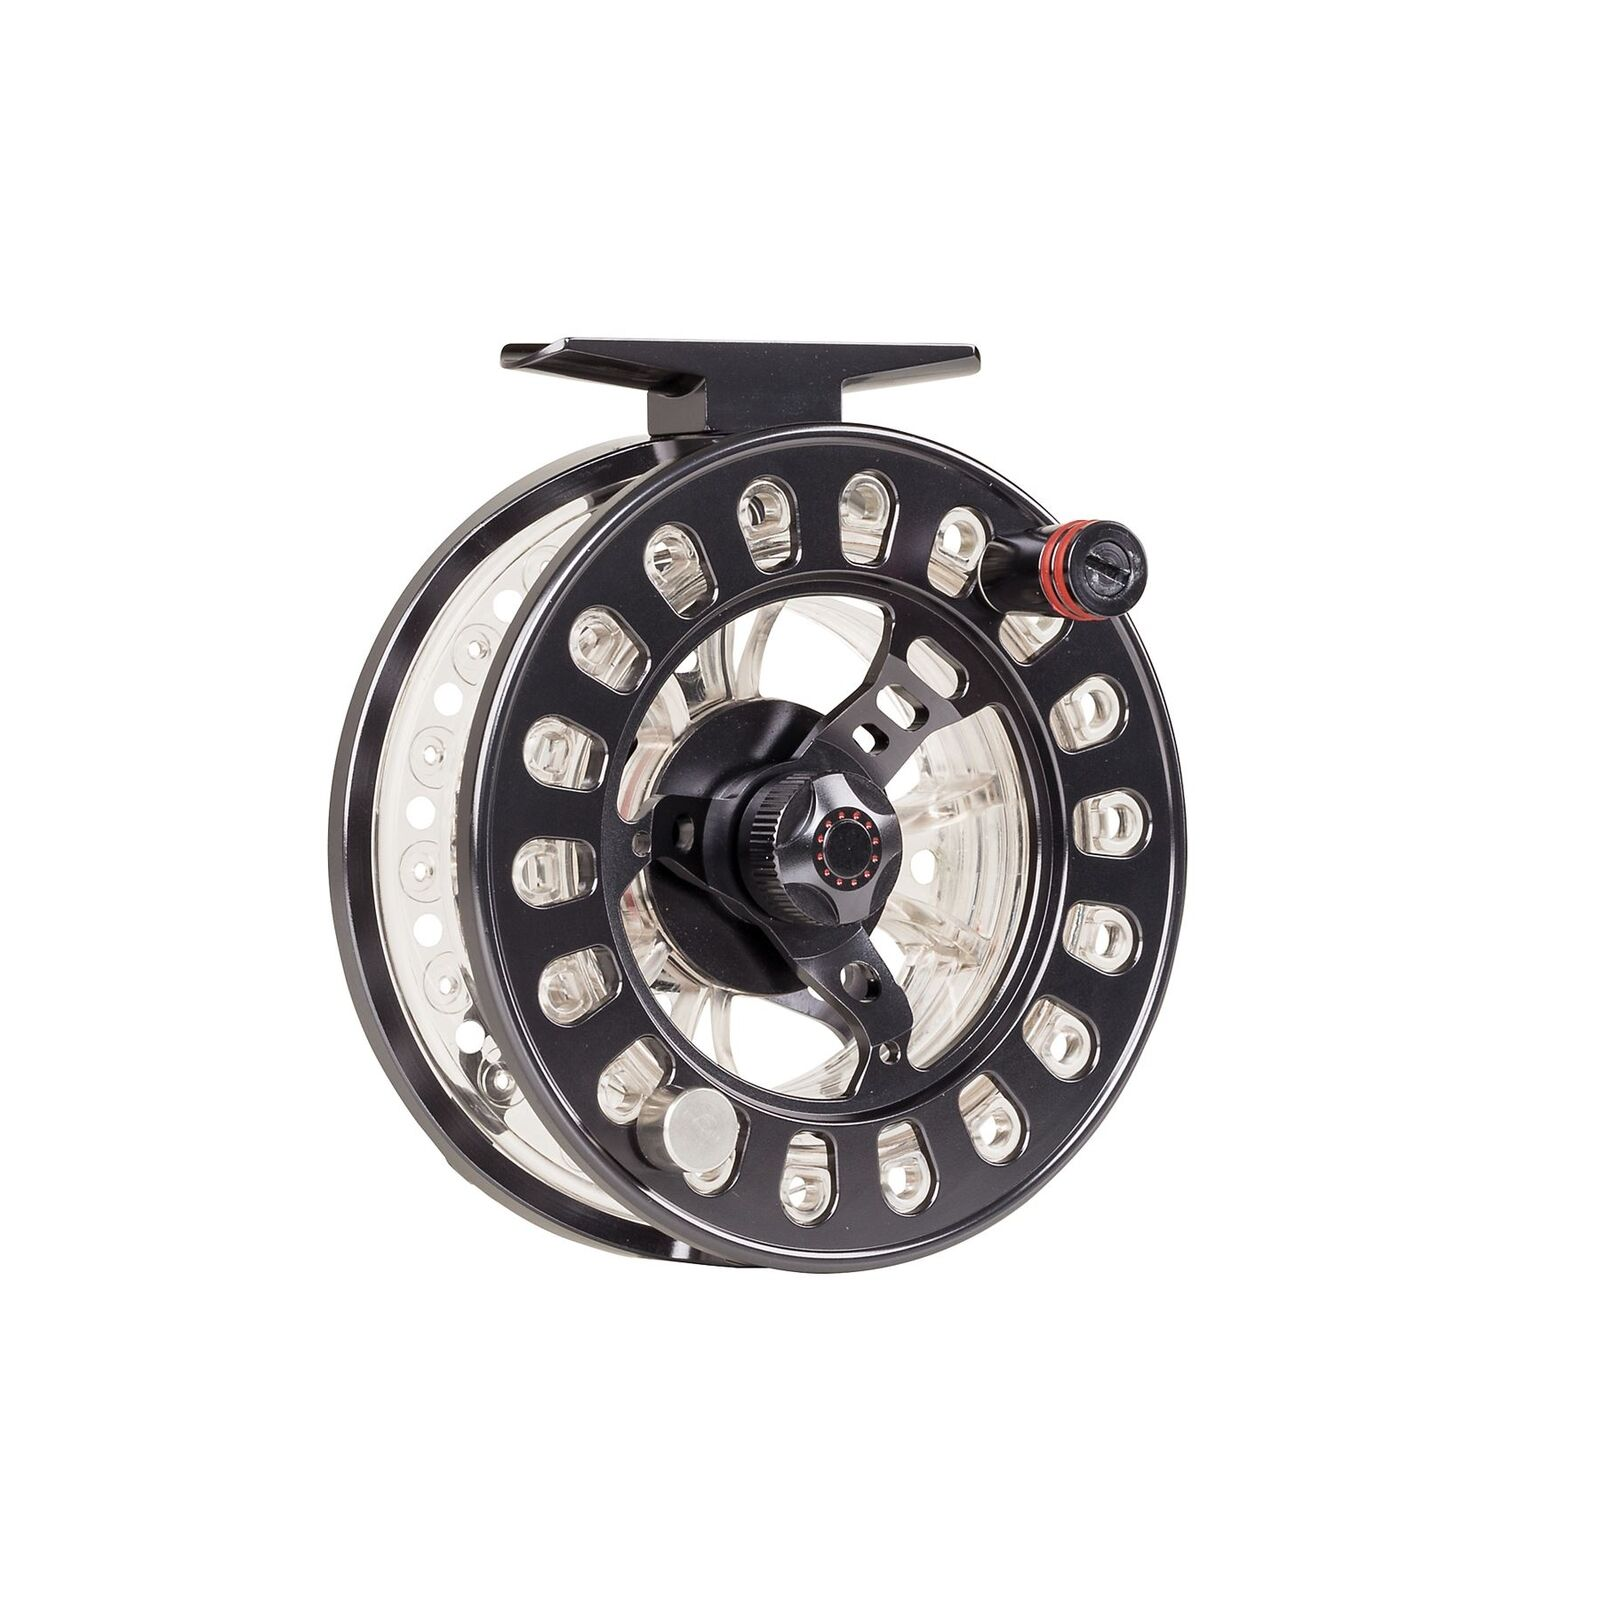 grigios QRS 2 3 4 5 Quad sistema di classificazione FLY FISHING REEL